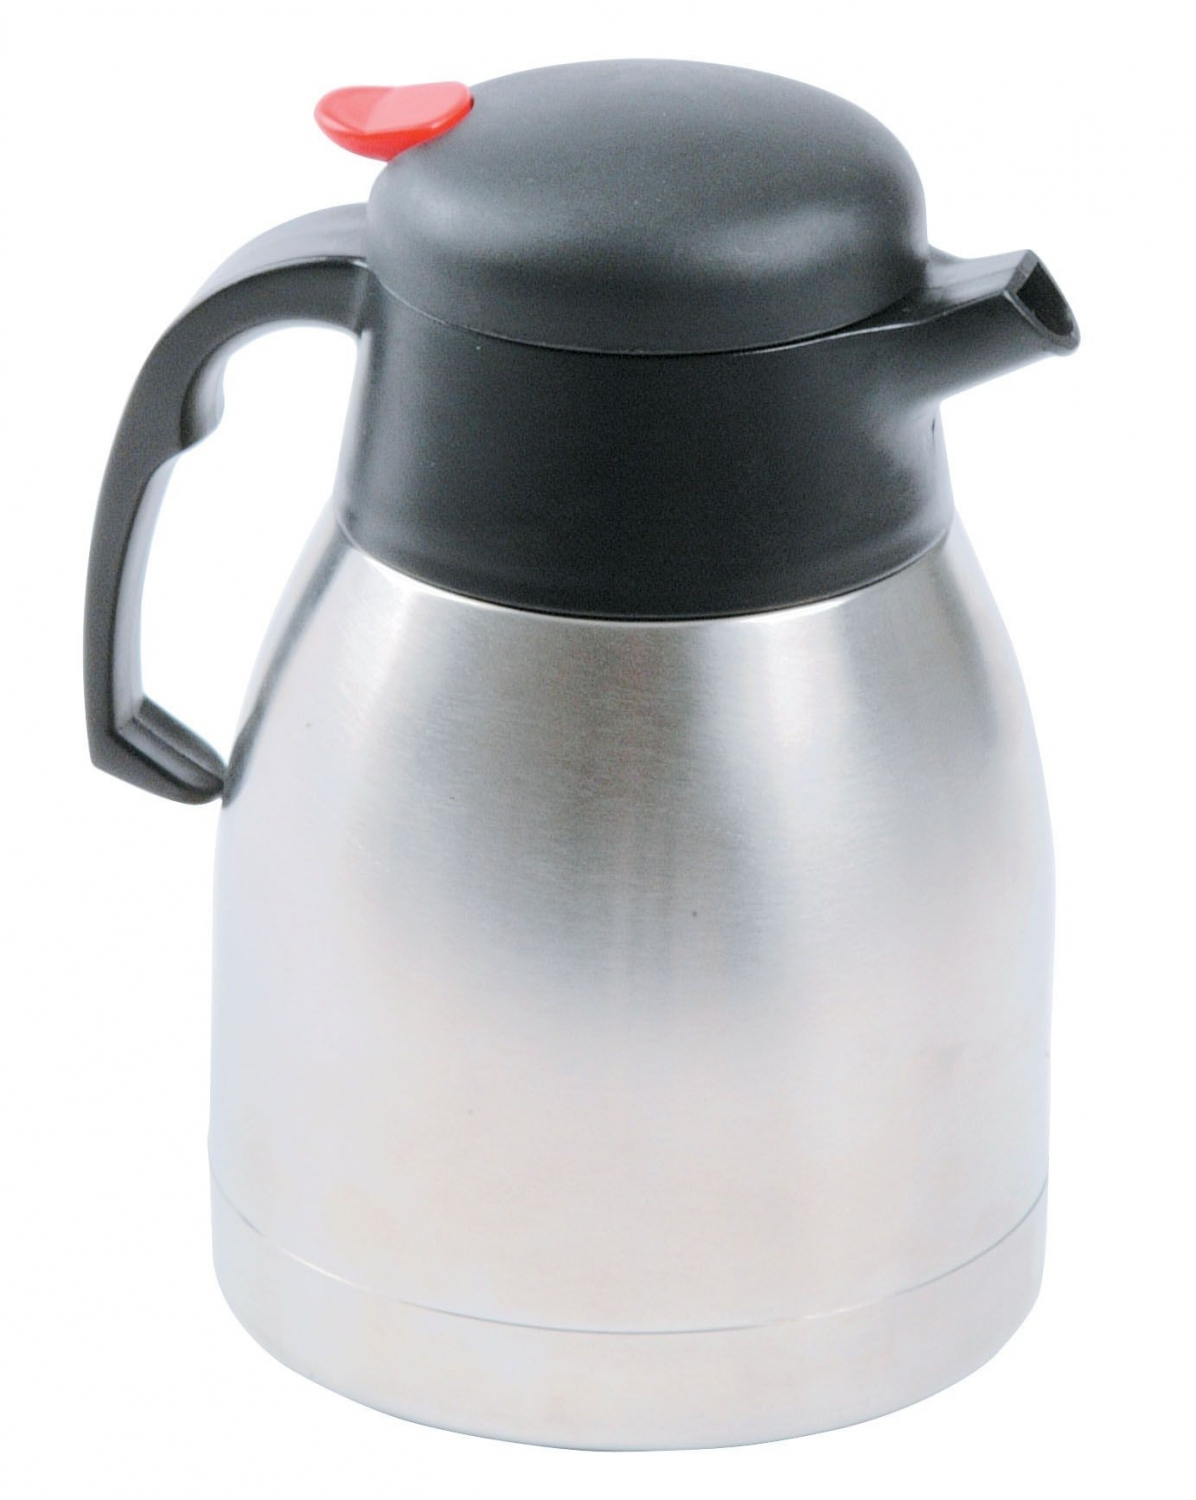 Johnson Rose 7310 1 Liter Double Walled Insulated Server